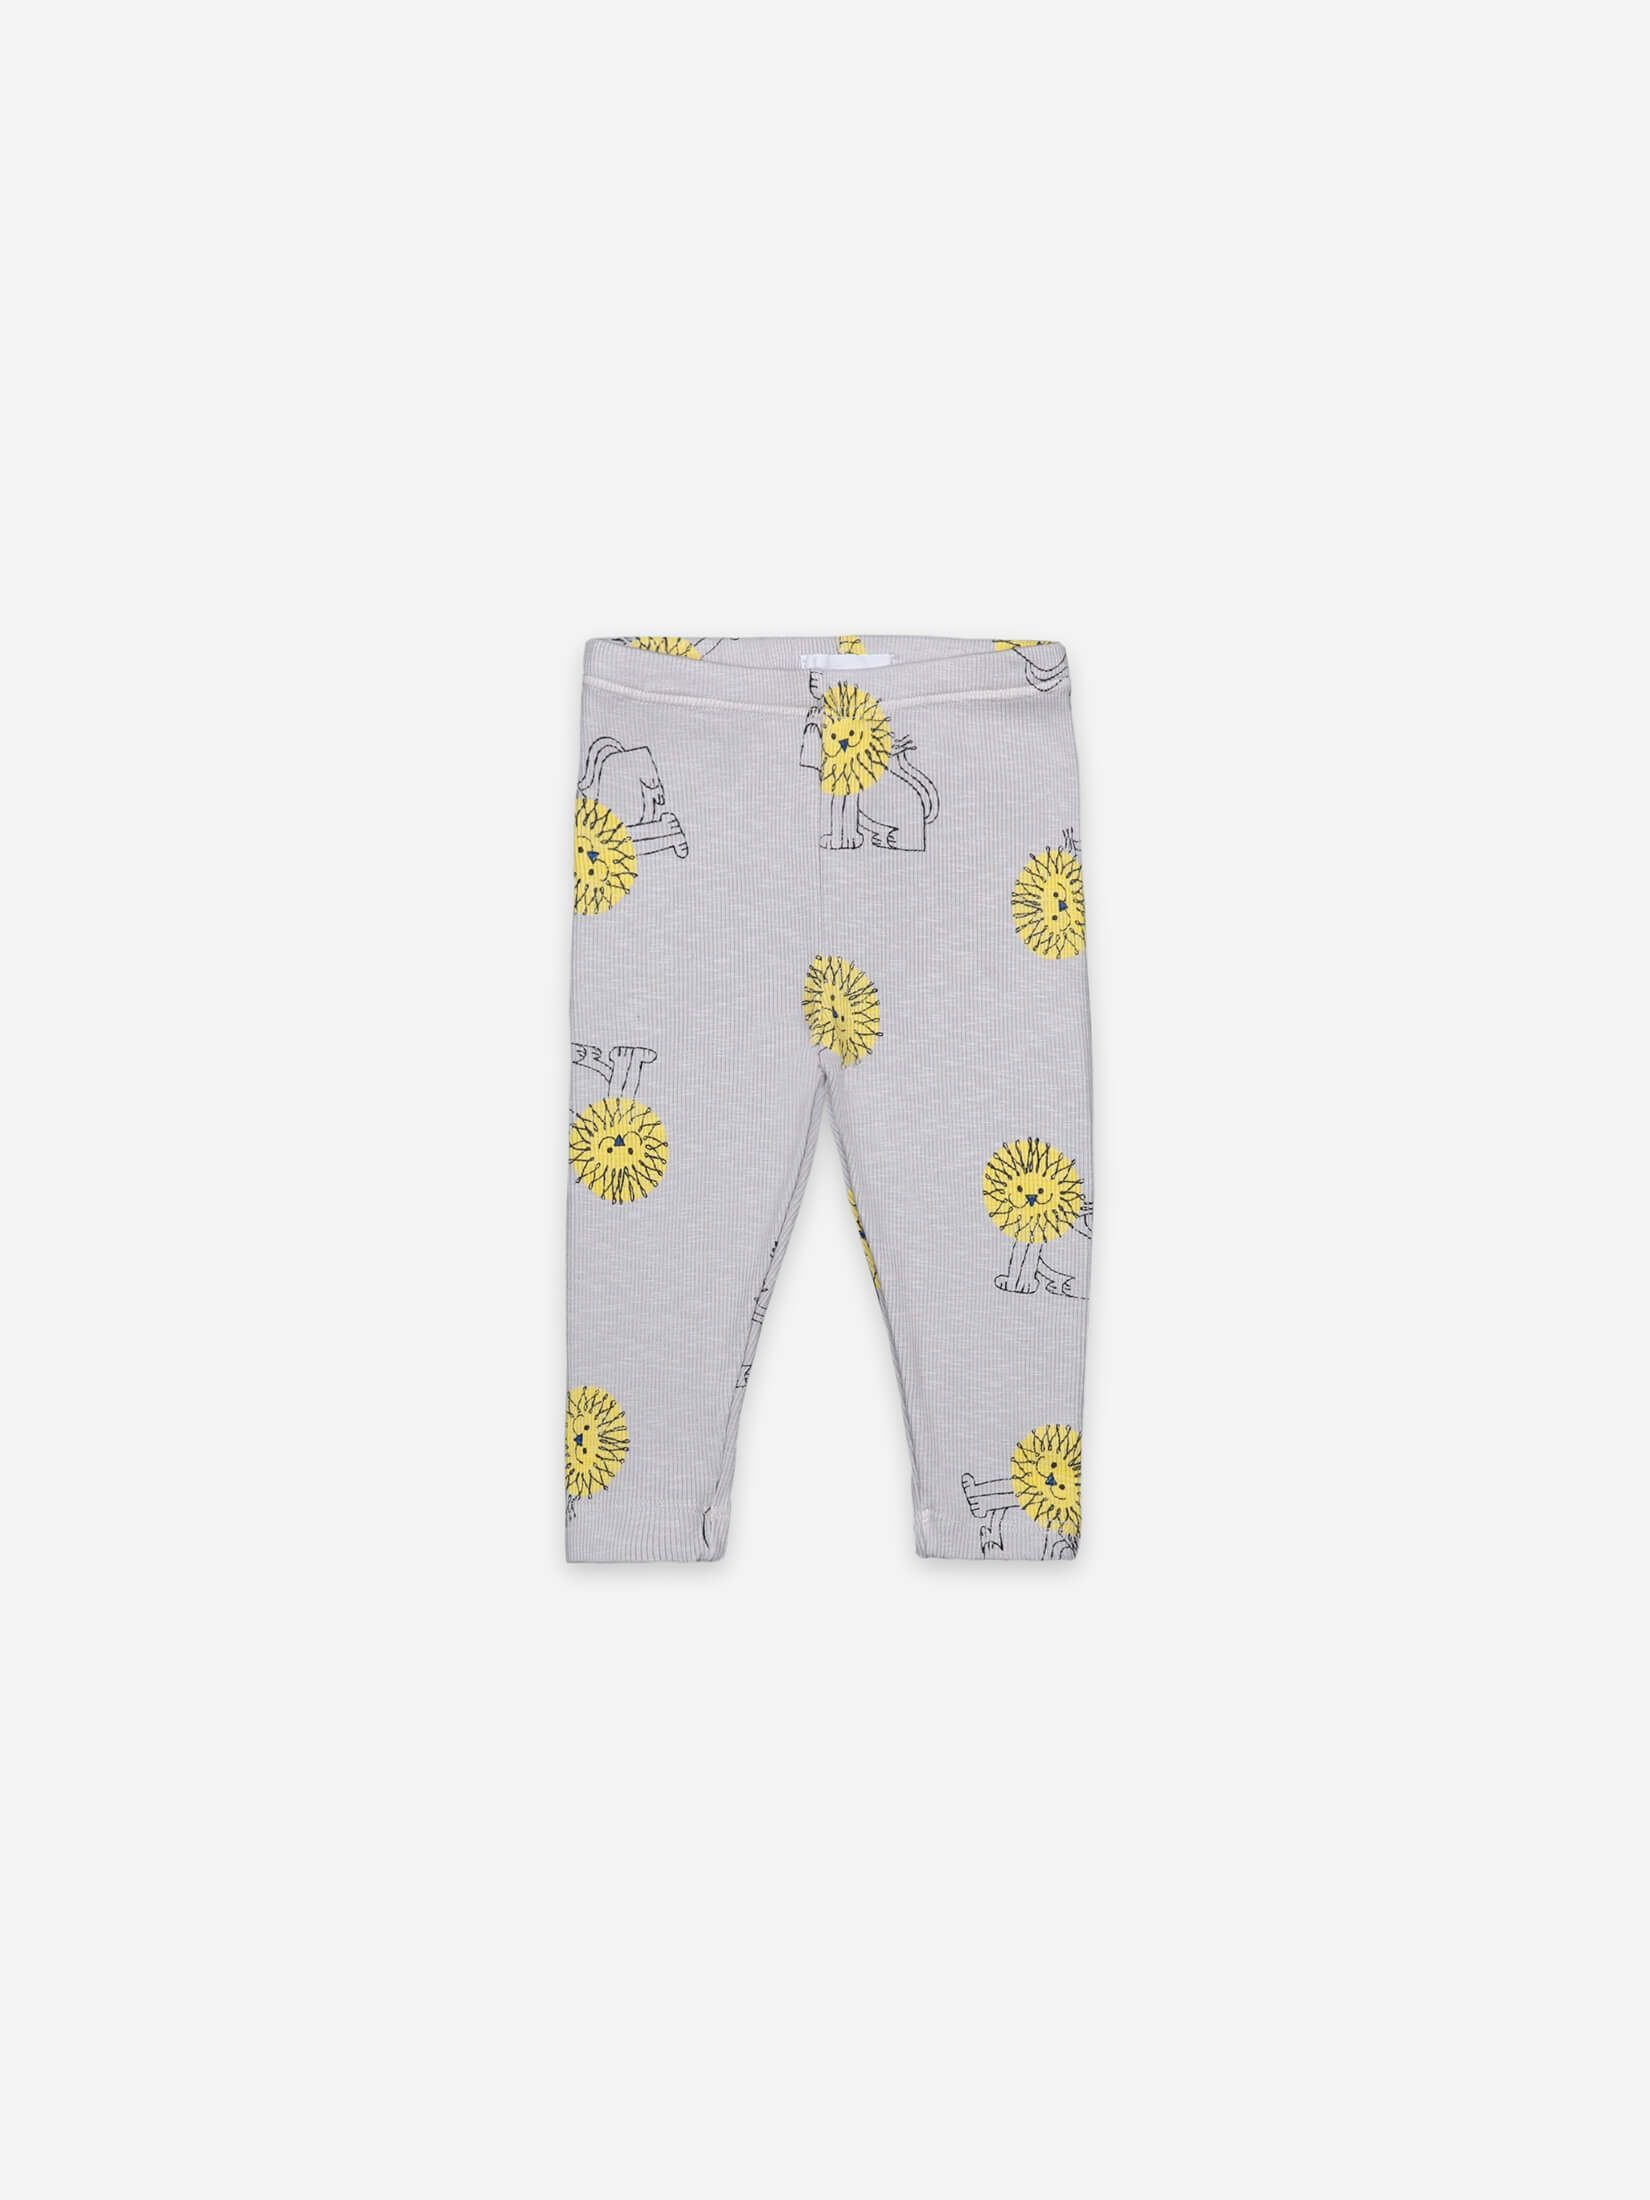 BOBO CHOSES ボボショセス Pet A Lion All Over Leggings size:18-24M(90-95)